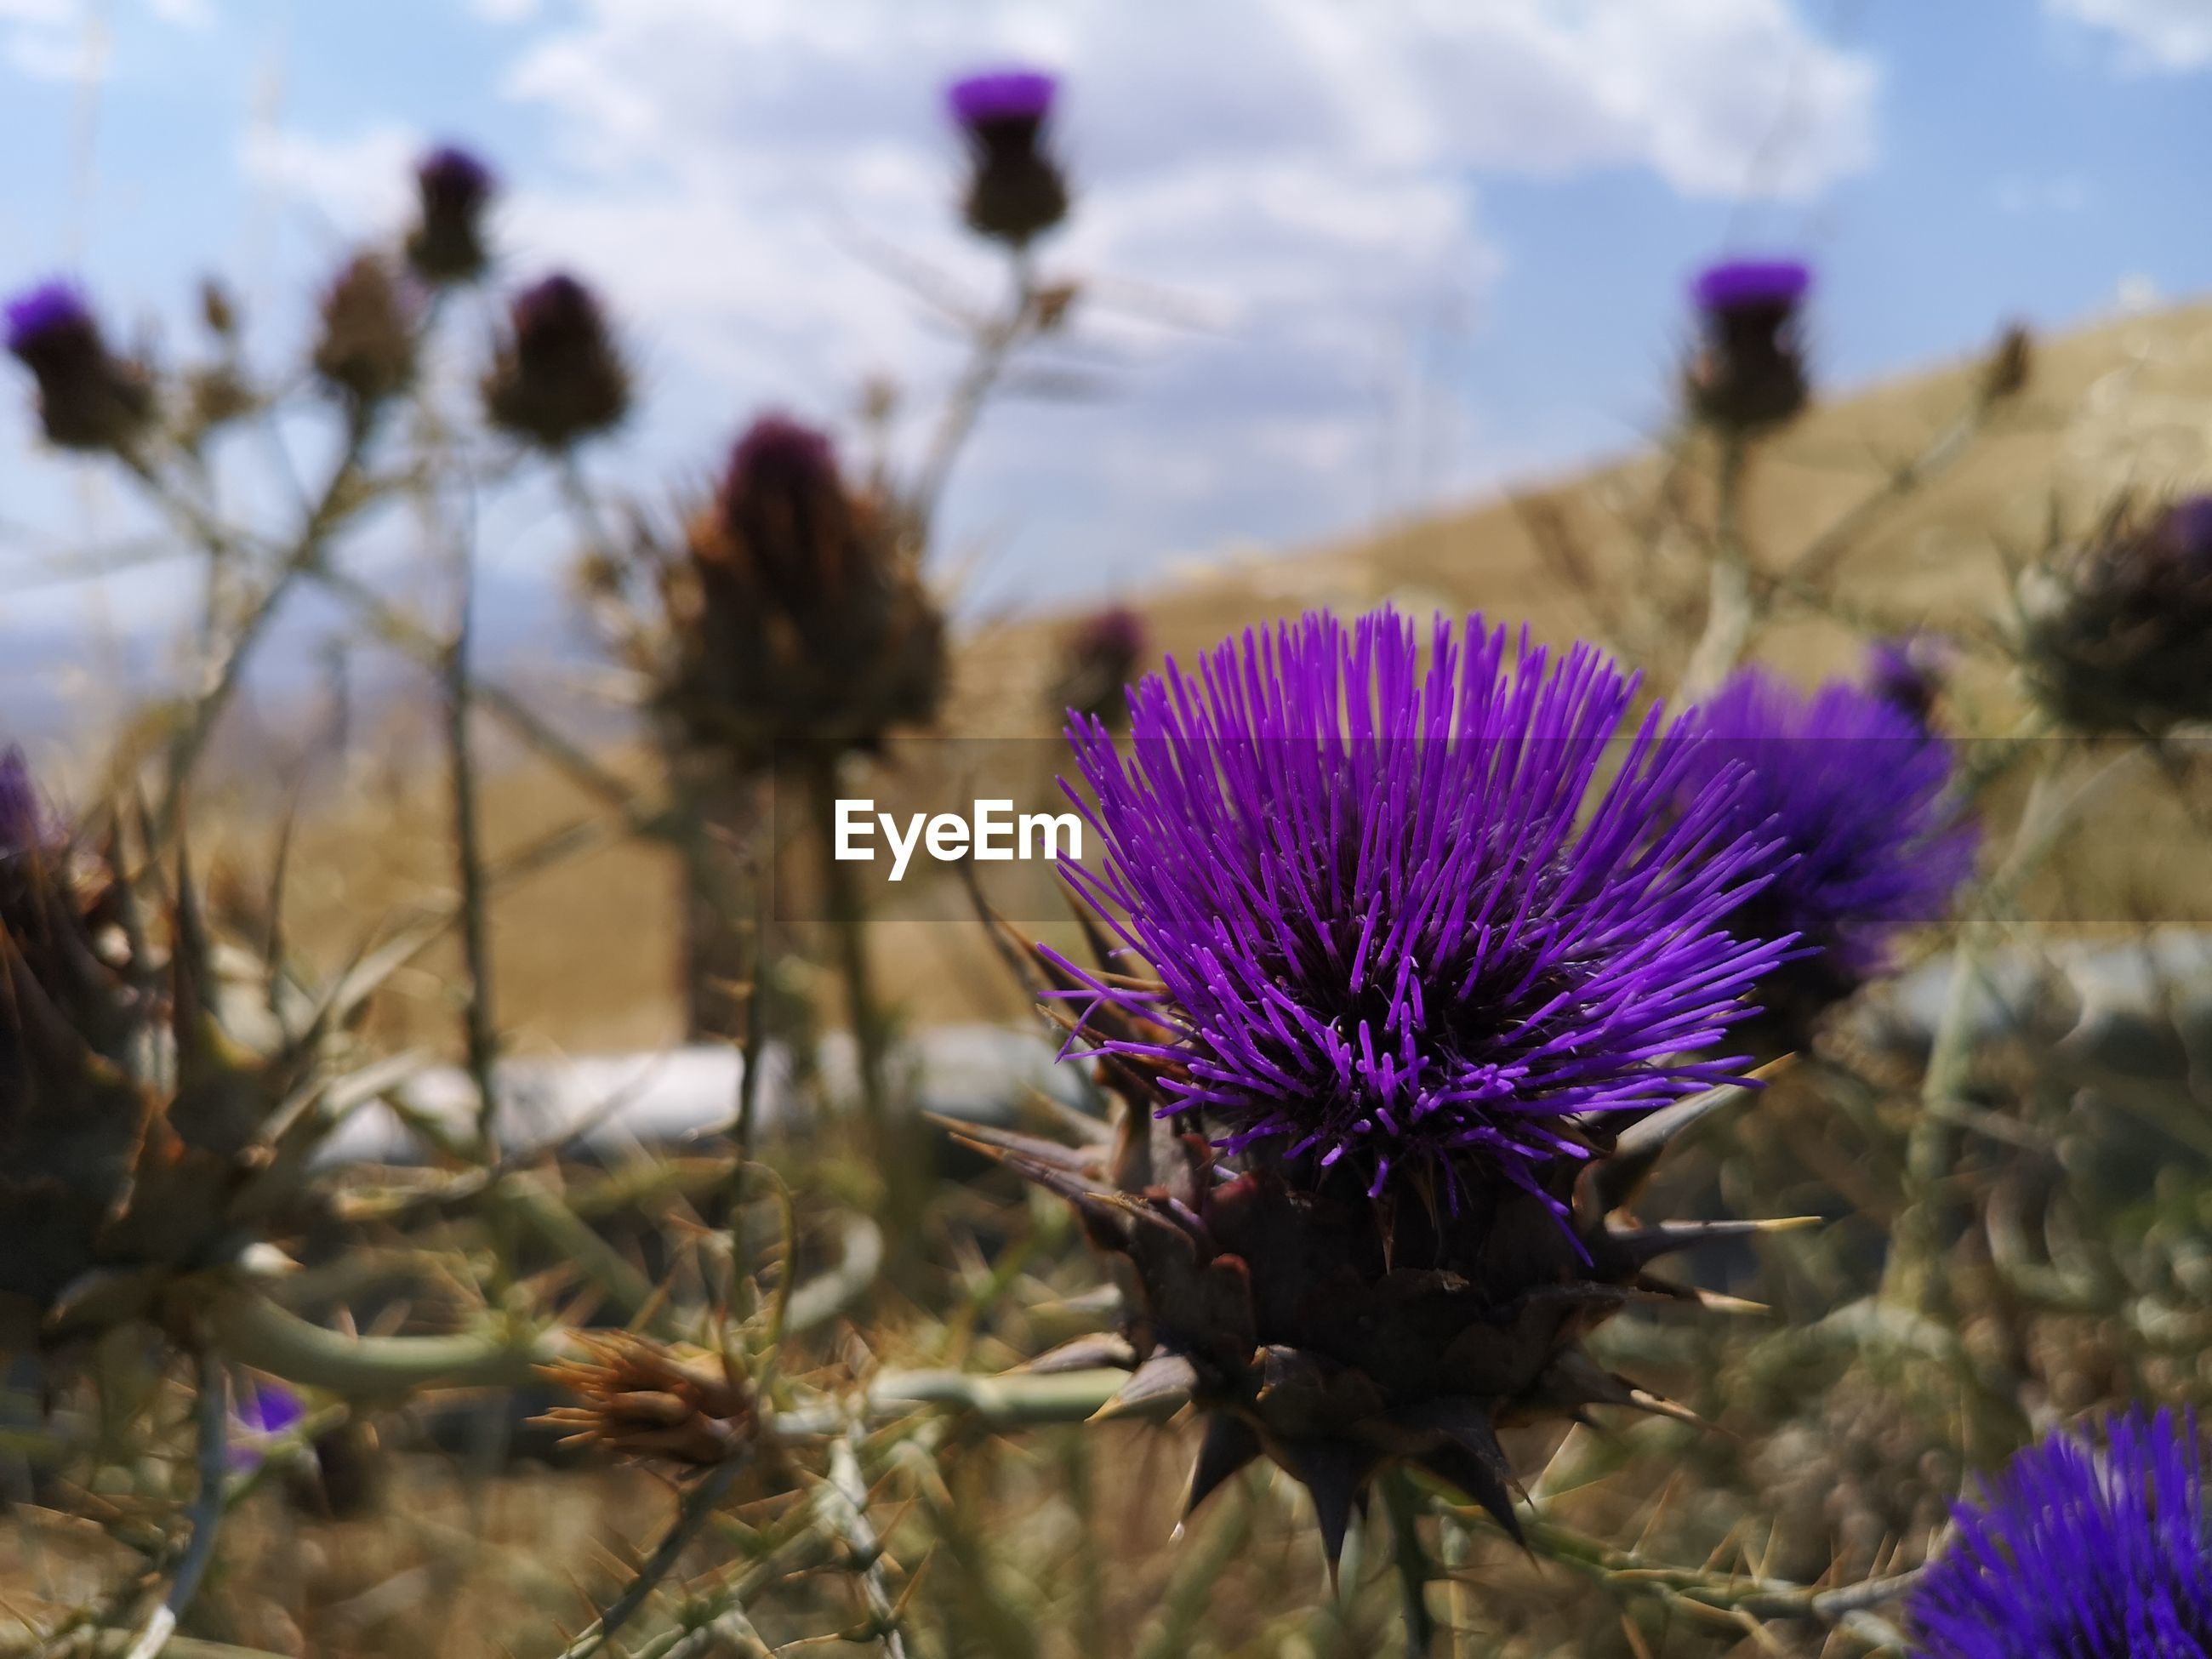 CLOSE-UP OF PURPLE THISTLE FLOWER IN FIELD